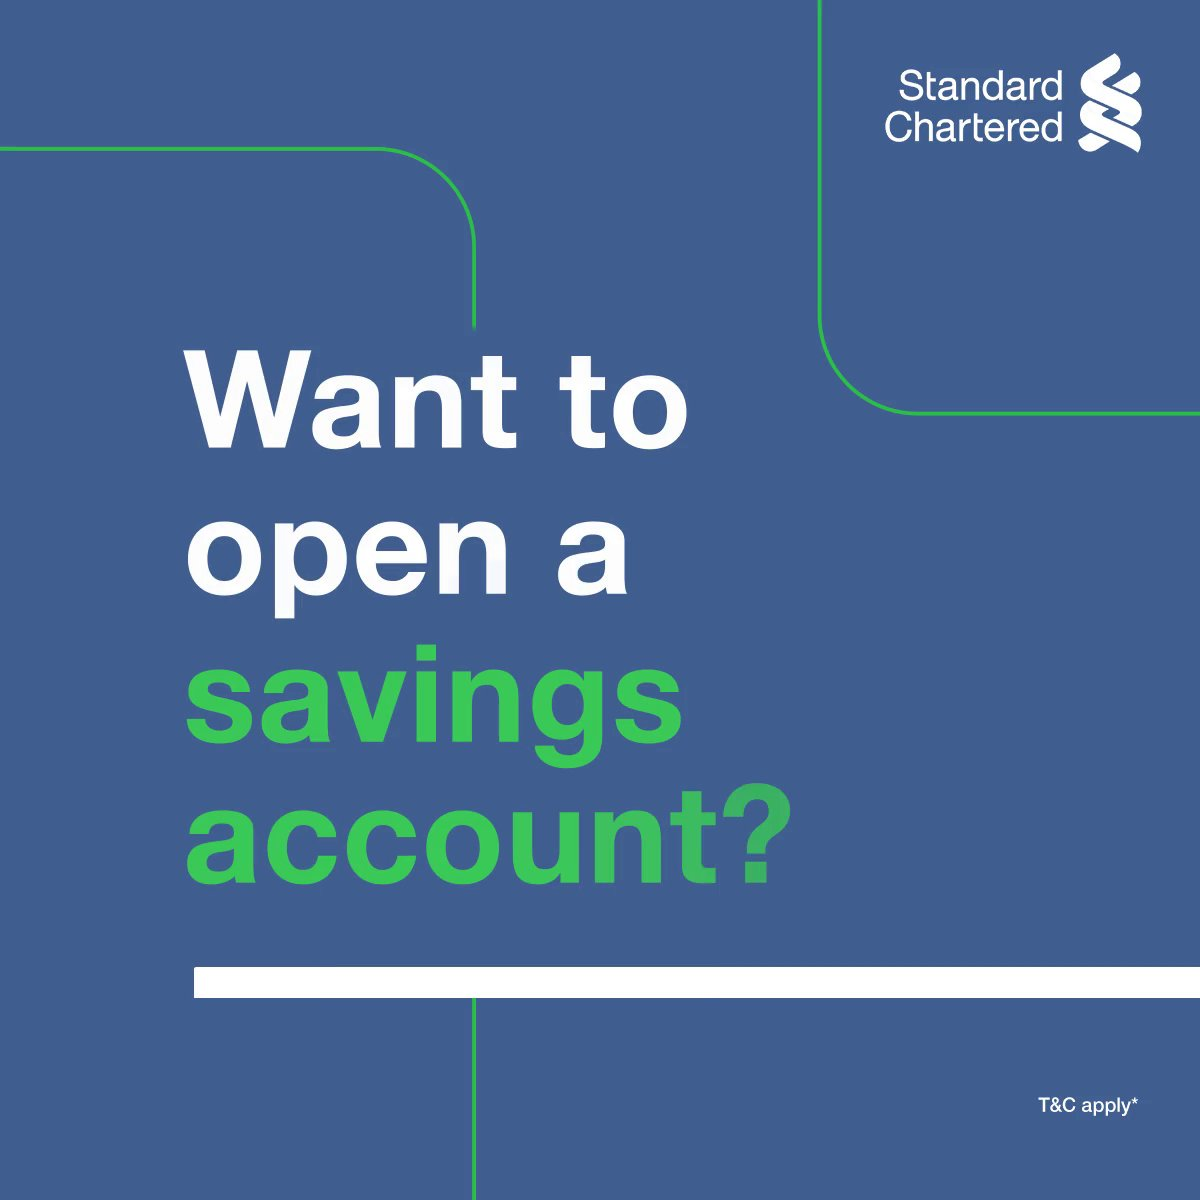 Why visit the bank when you can open a savings account from your home, with a click! #TechItEasy with Standard Chartered and open a savings account with zero-contact Video KYC today. To know more,